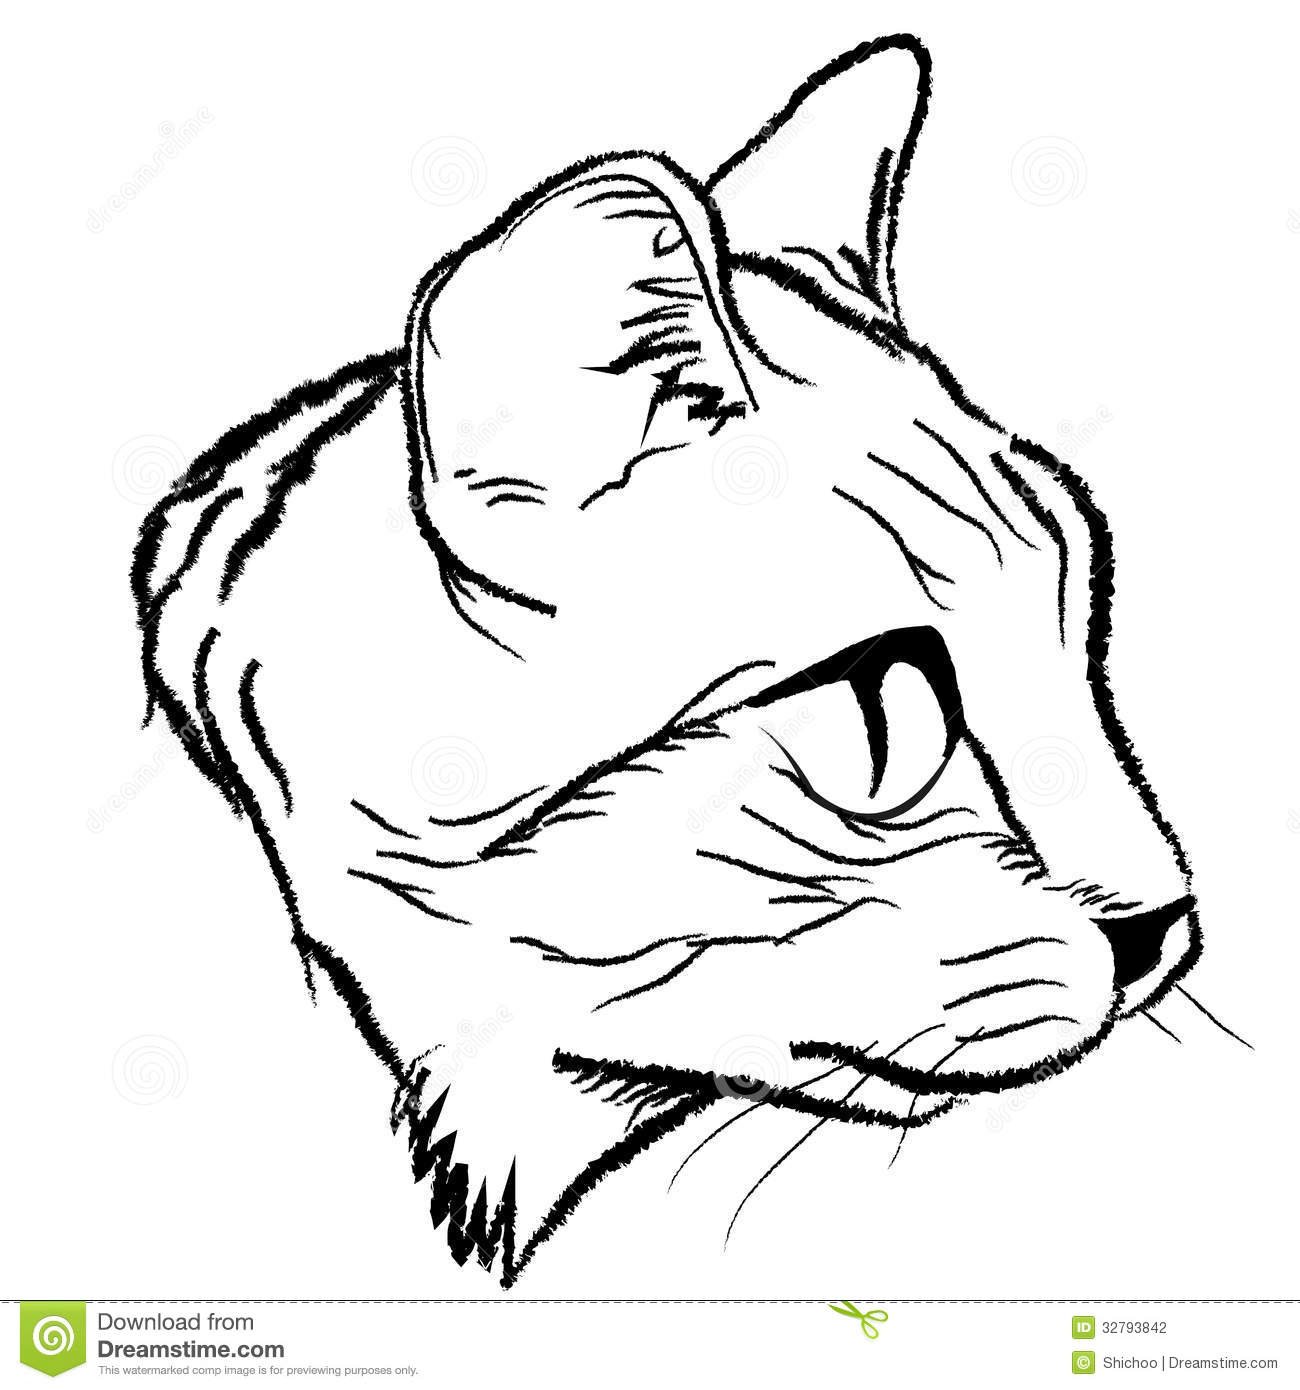 Cat Faces Drawing At Getdrawings Com Free For Personal Use Cat